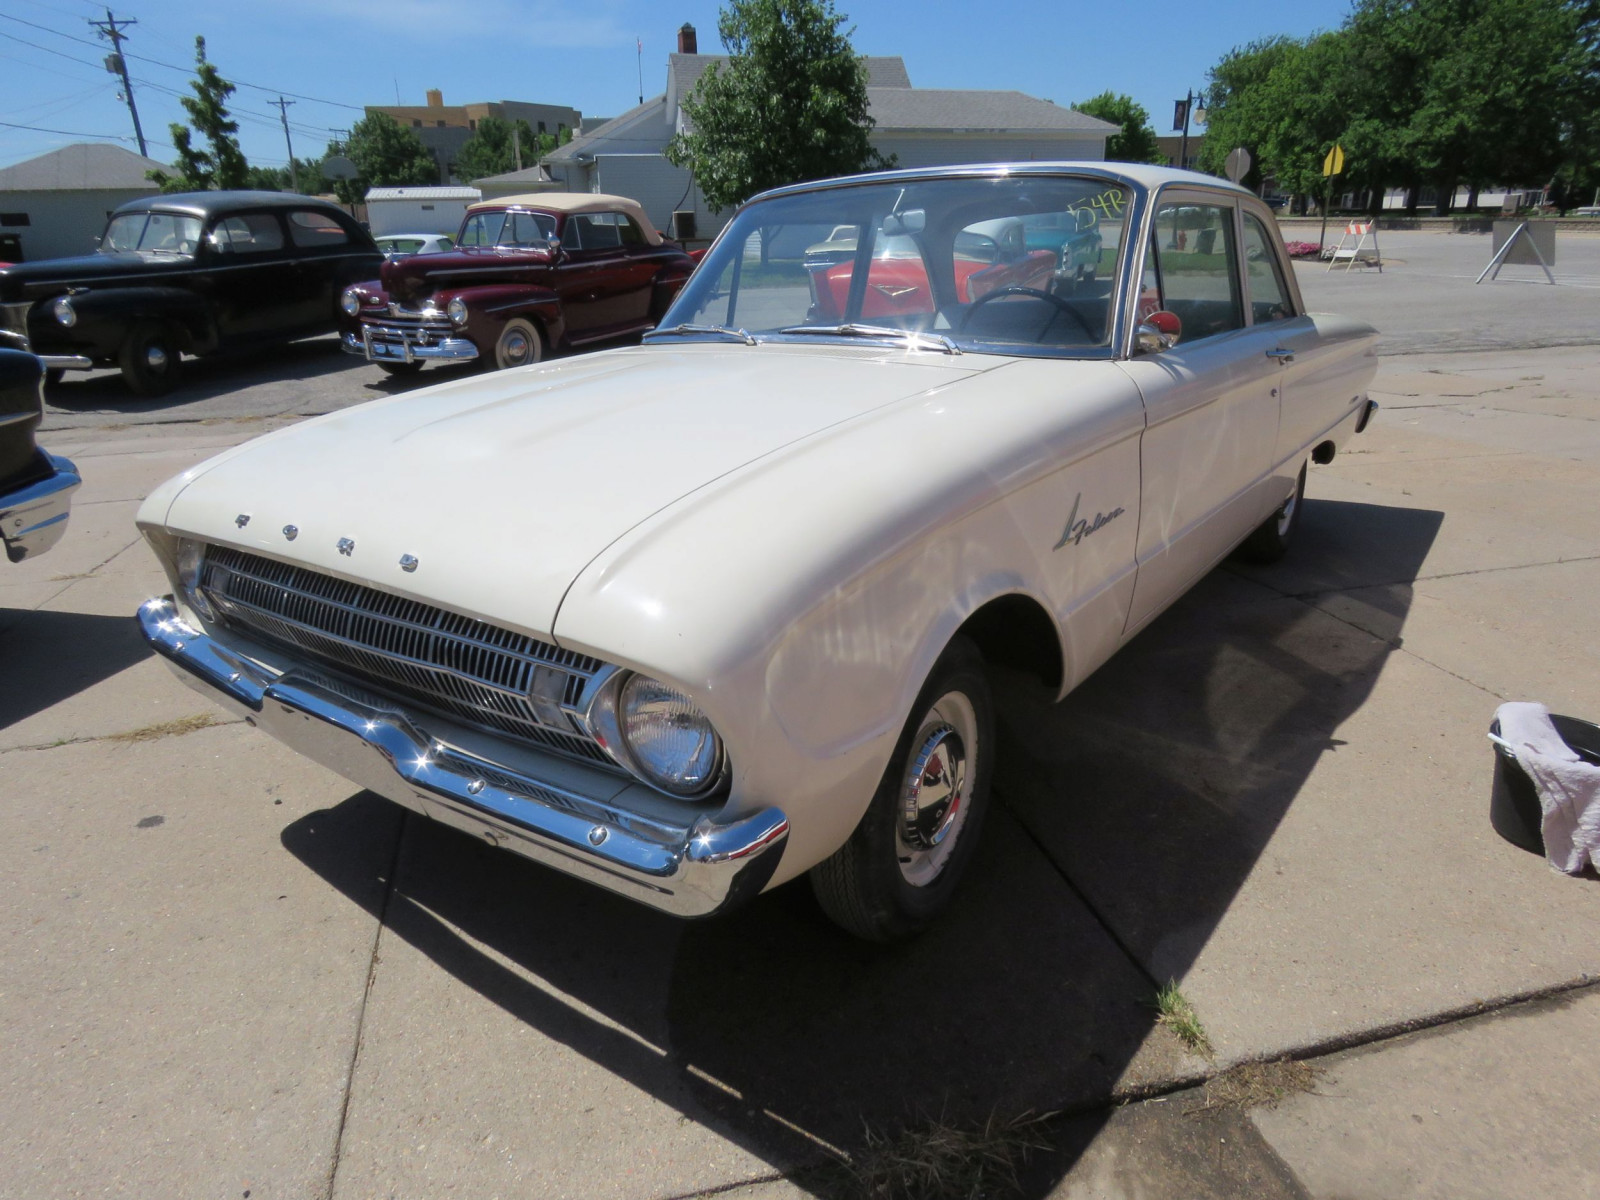 1961 FORD FALCON 2DR SEDAN LESS THAN 10,000 MILES - Image 3